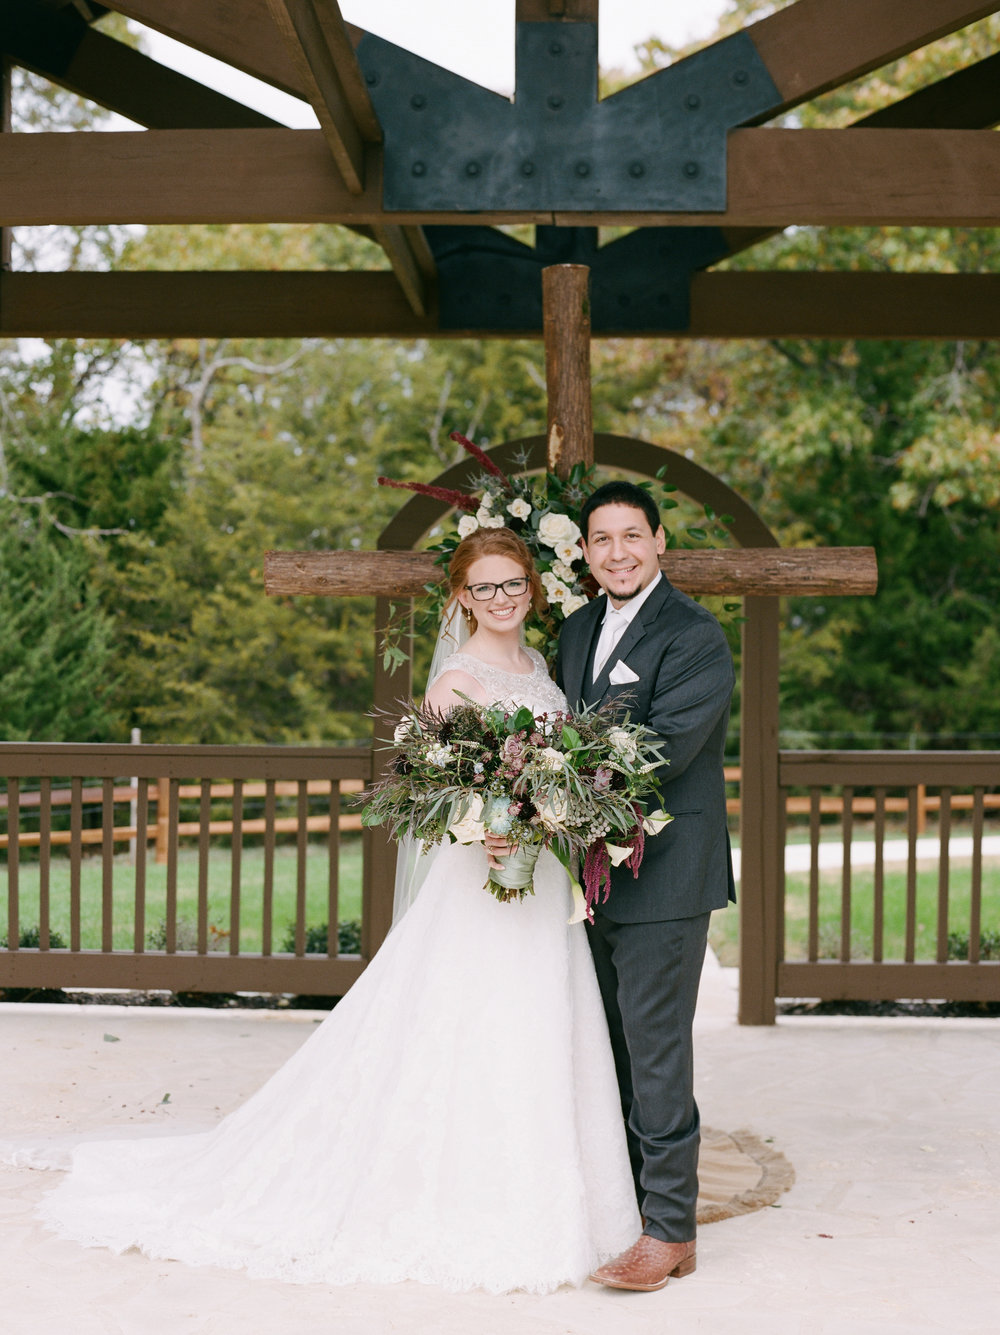 brittany&roldan-preview-26.jpg